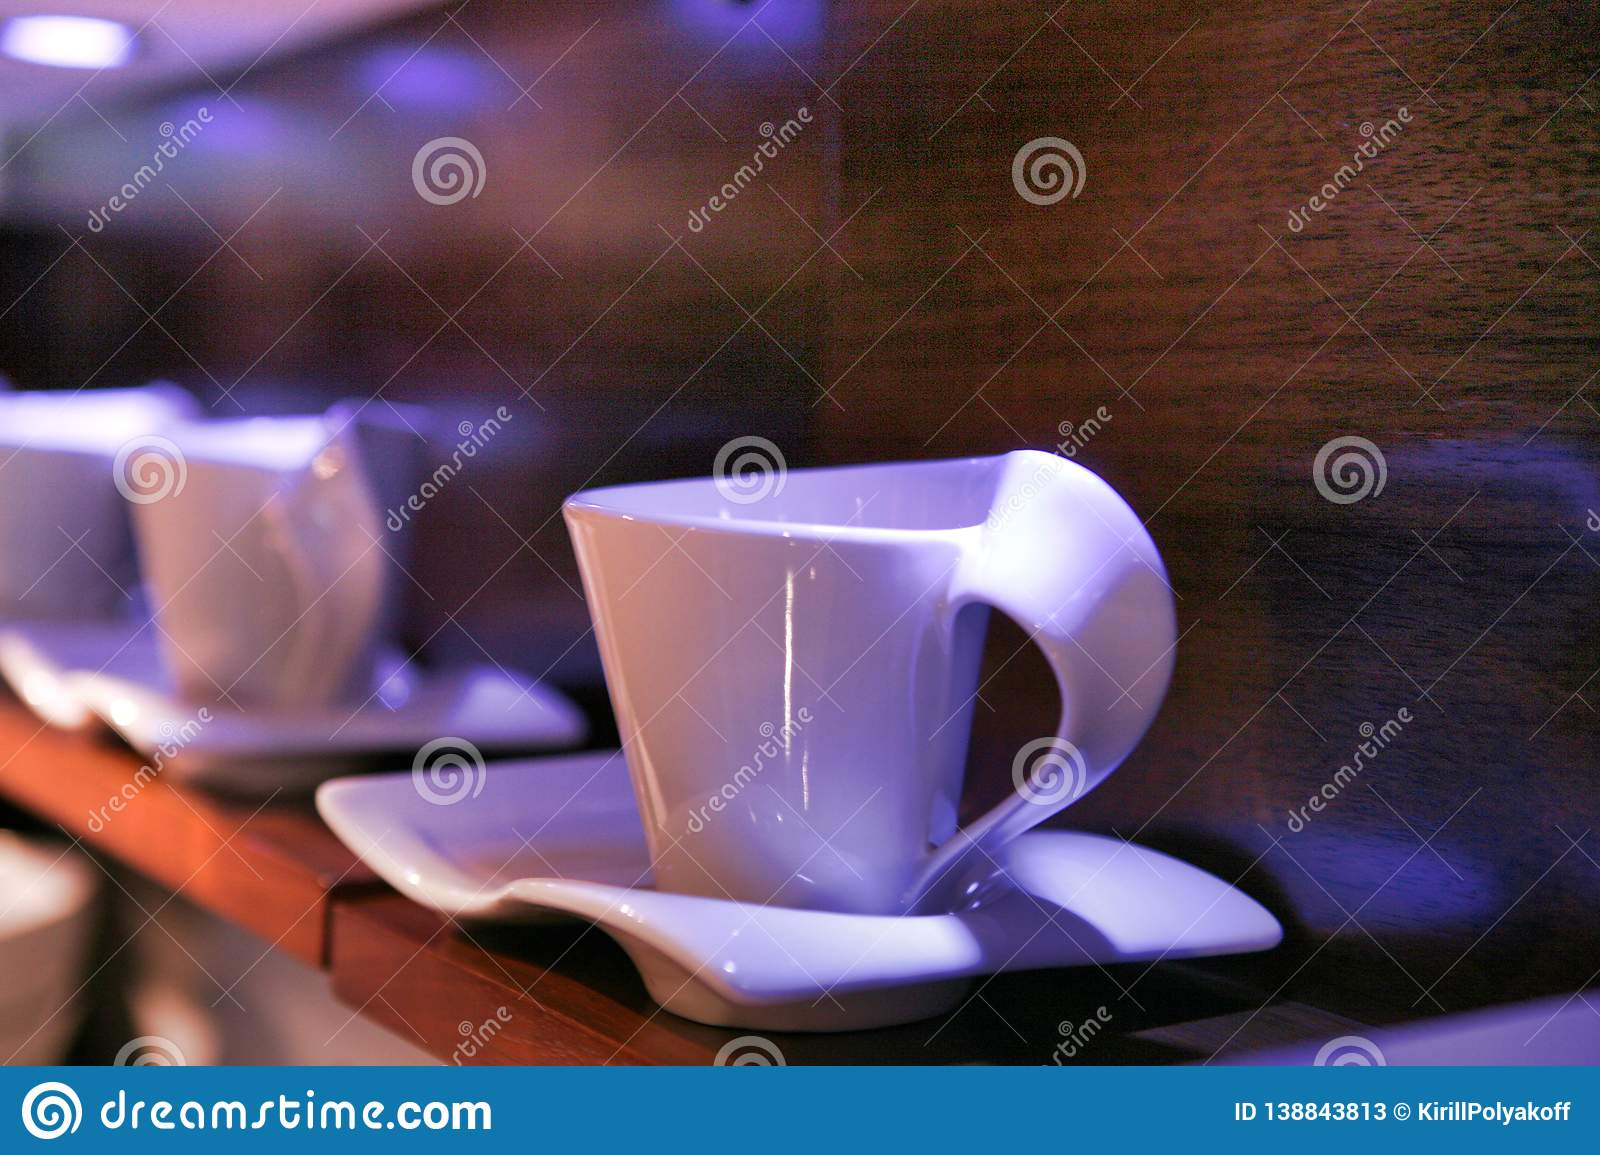 Unusual porcelain white cups and saucers displayed on a wooden shelf.